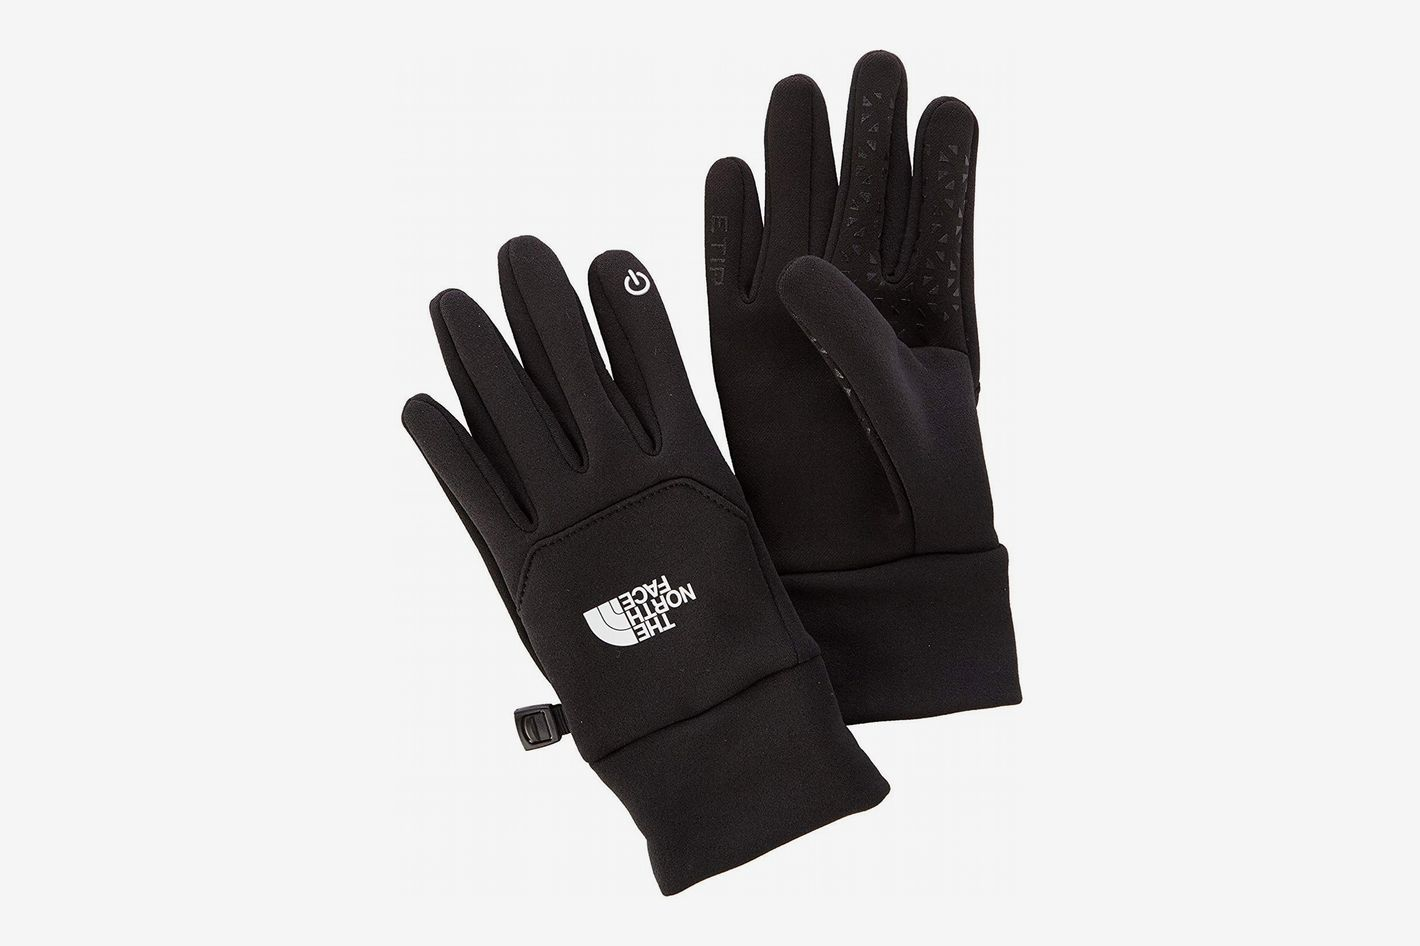 7b4f833b8 11 Best Touchscreen Gloves for Men and Women